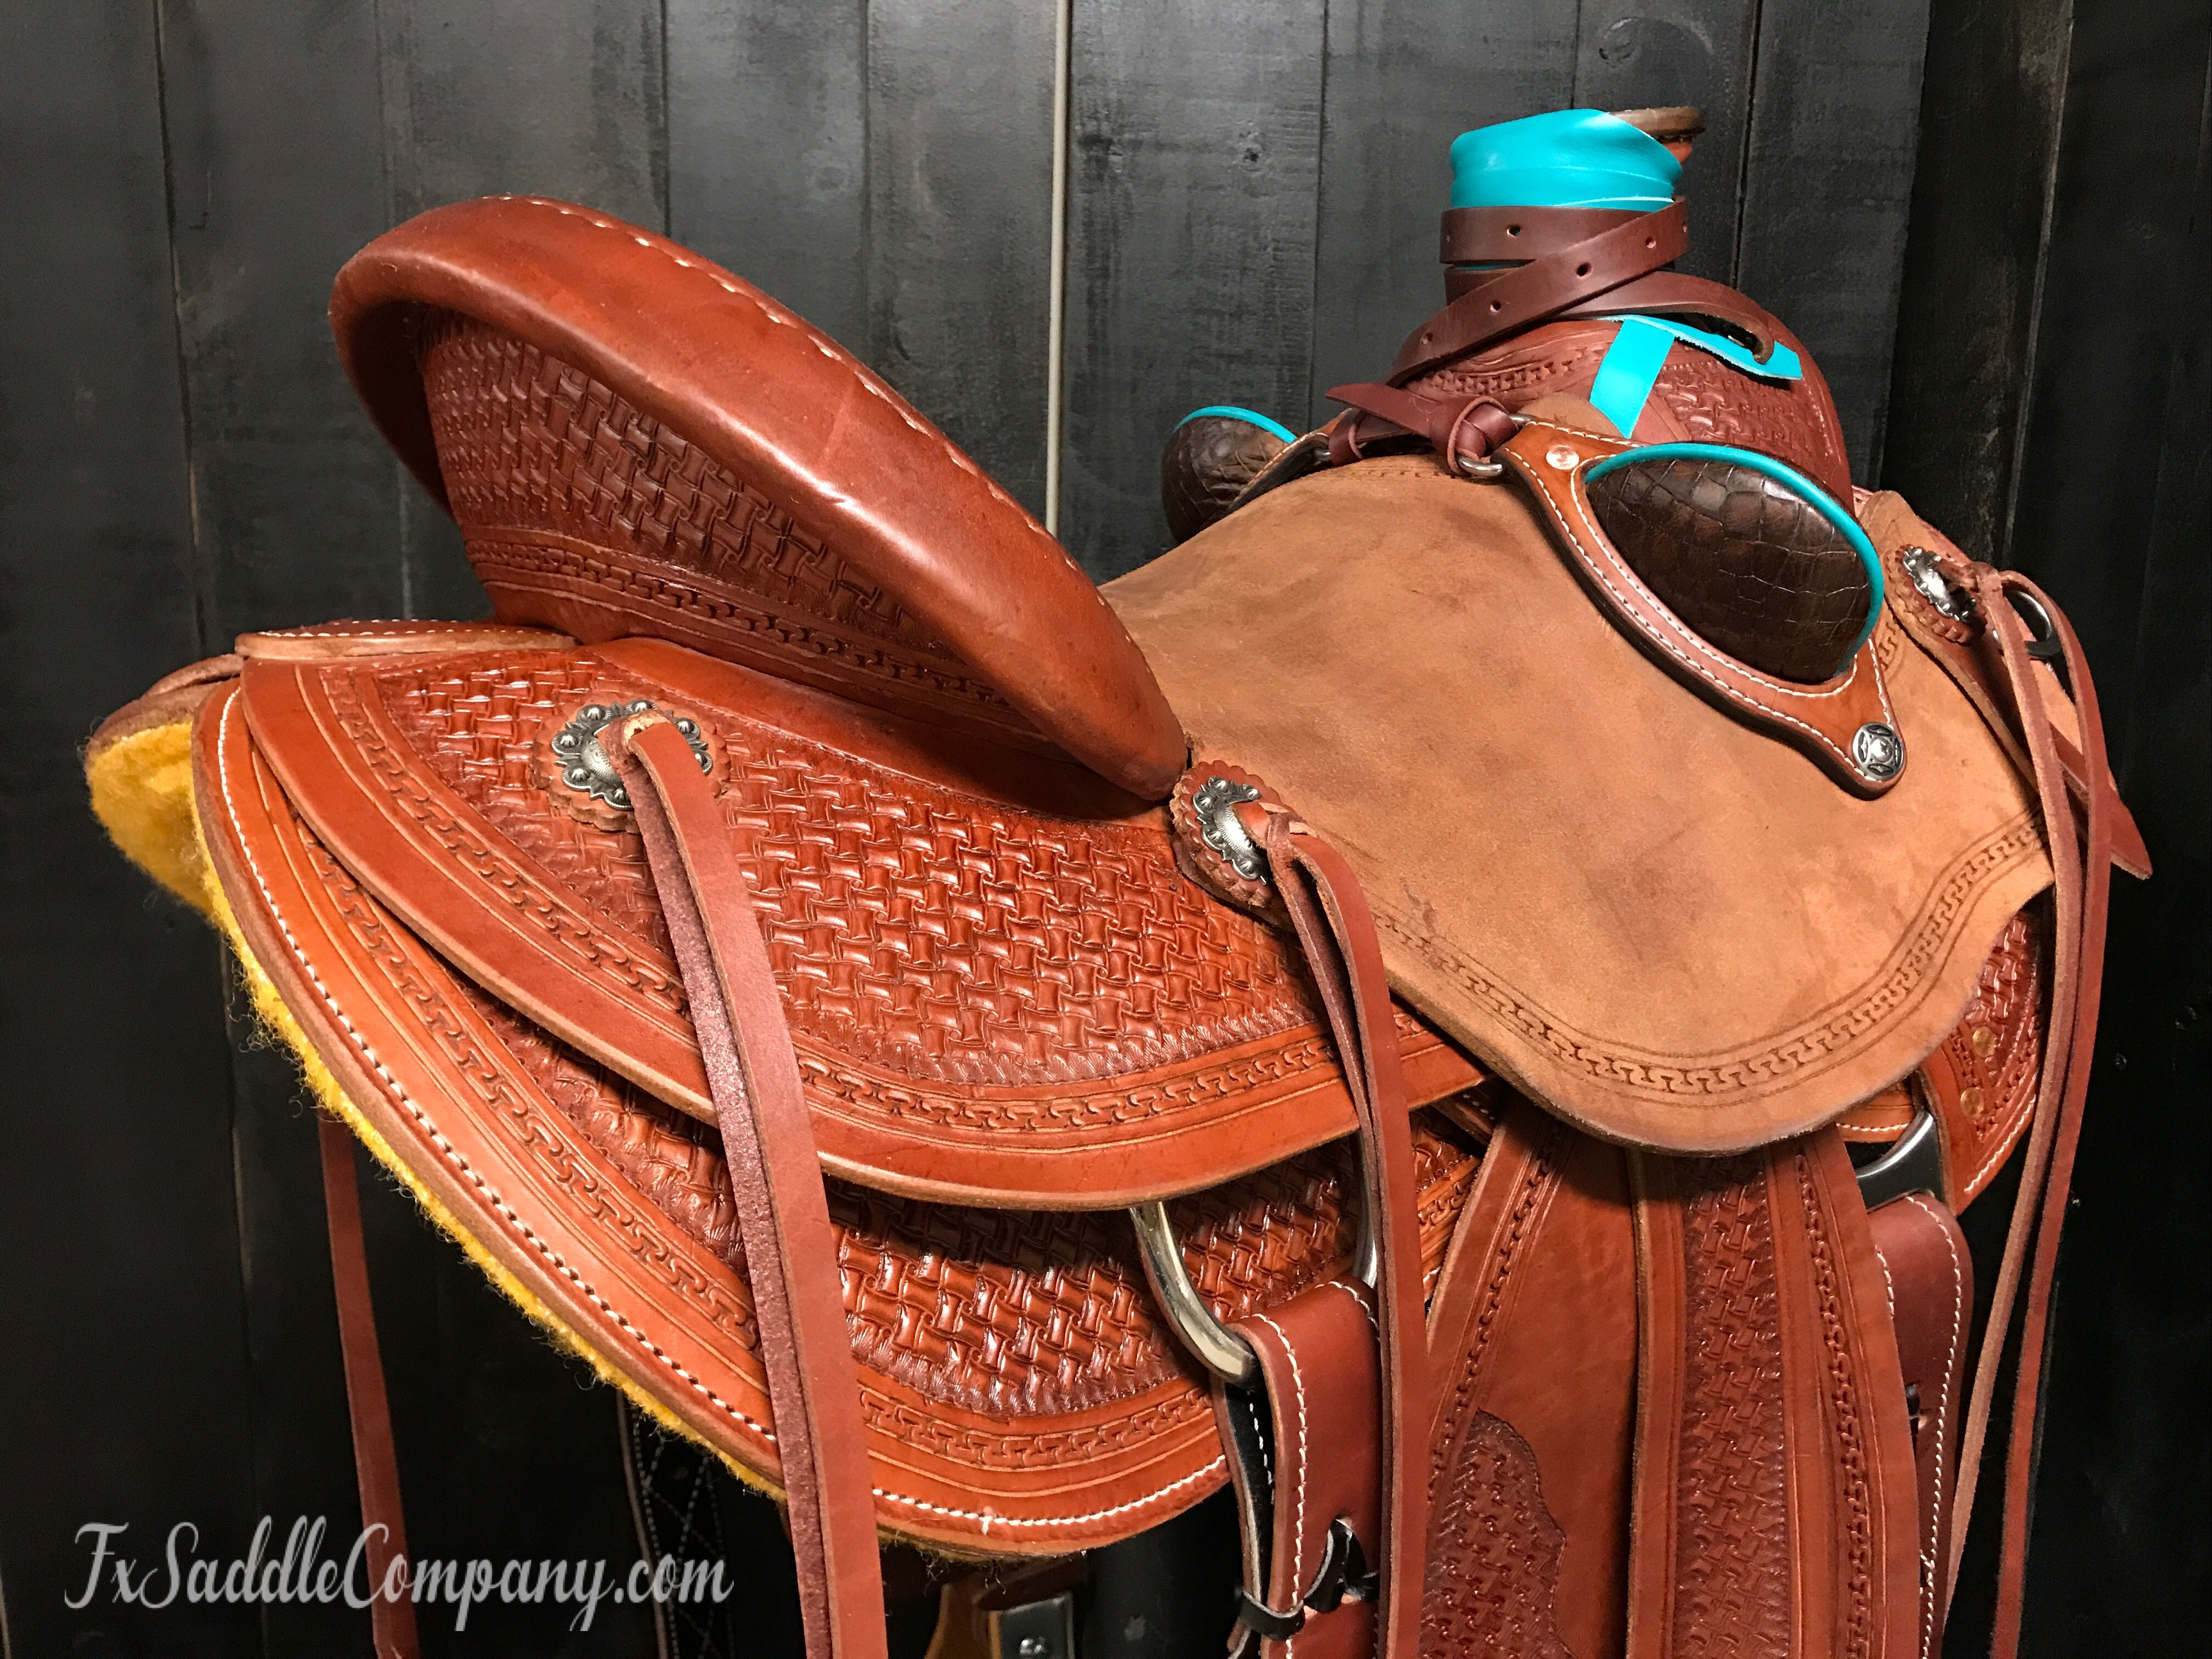 Wade saddle by FX Saddle Co  with turquoise horn wrap and